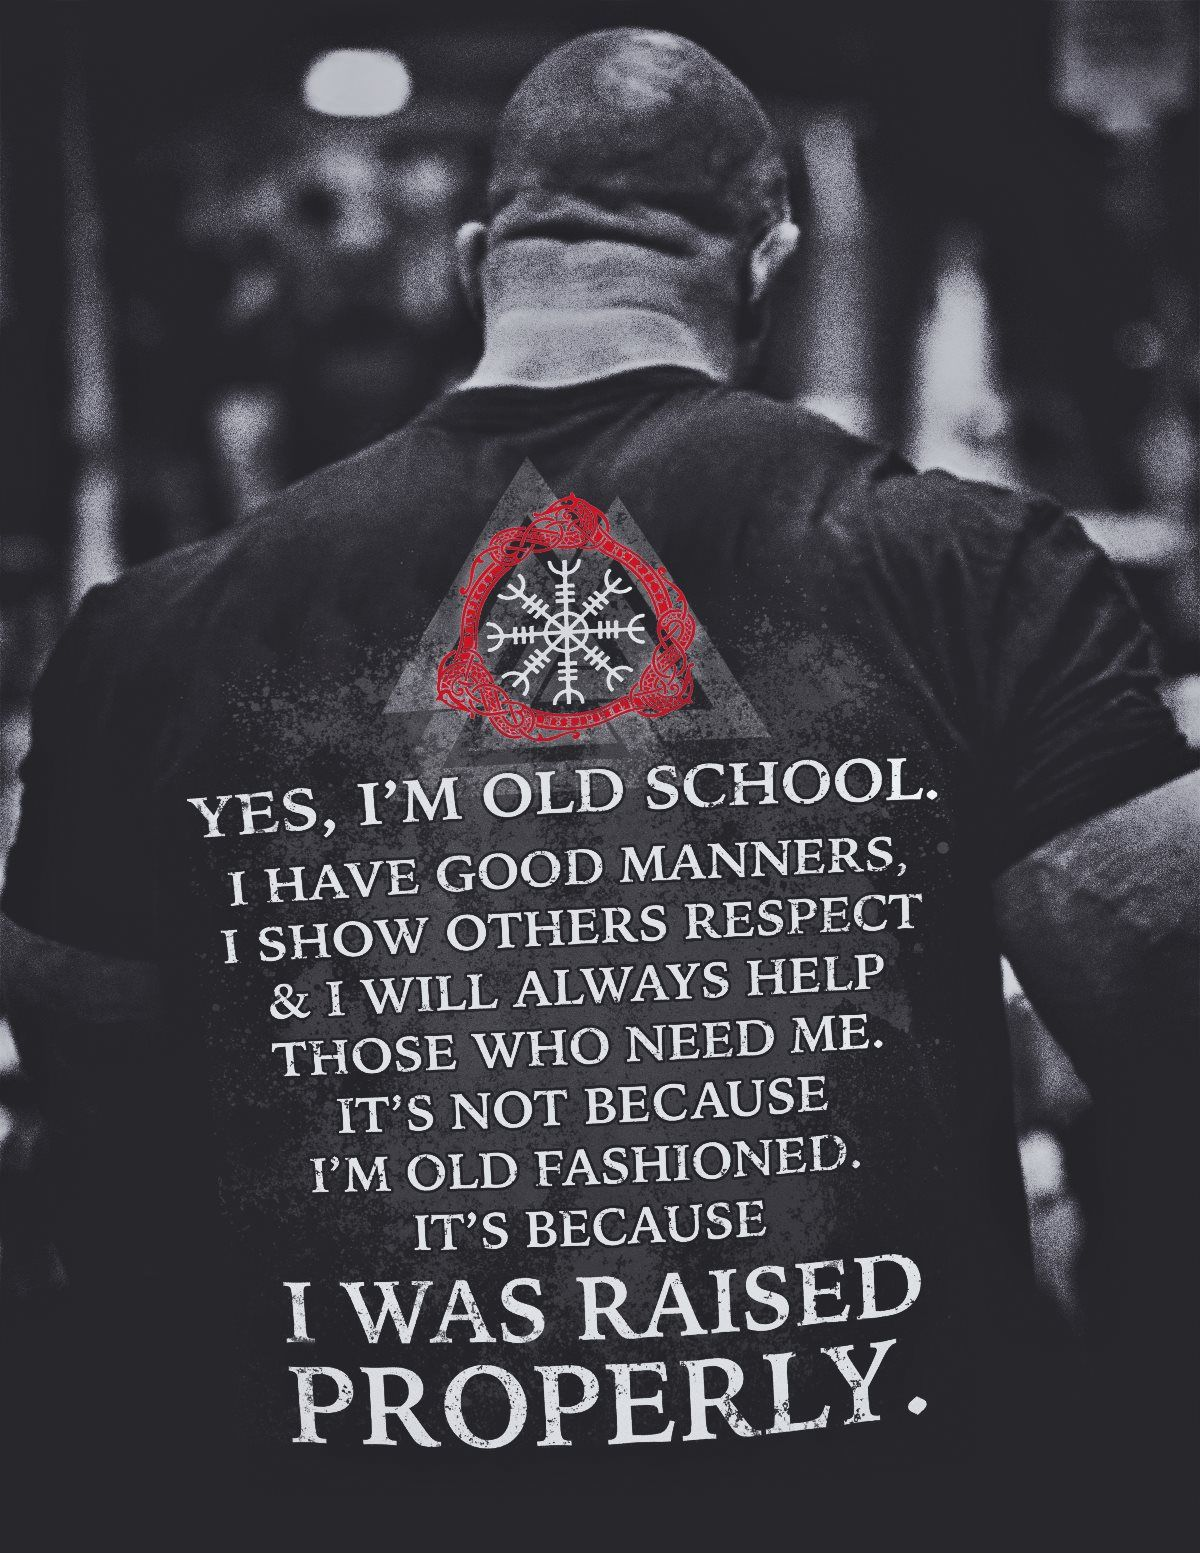 Viking, Norse, Gym t-shirt & apparel, Yes I'm old school, back #oldtshirtsandsuch